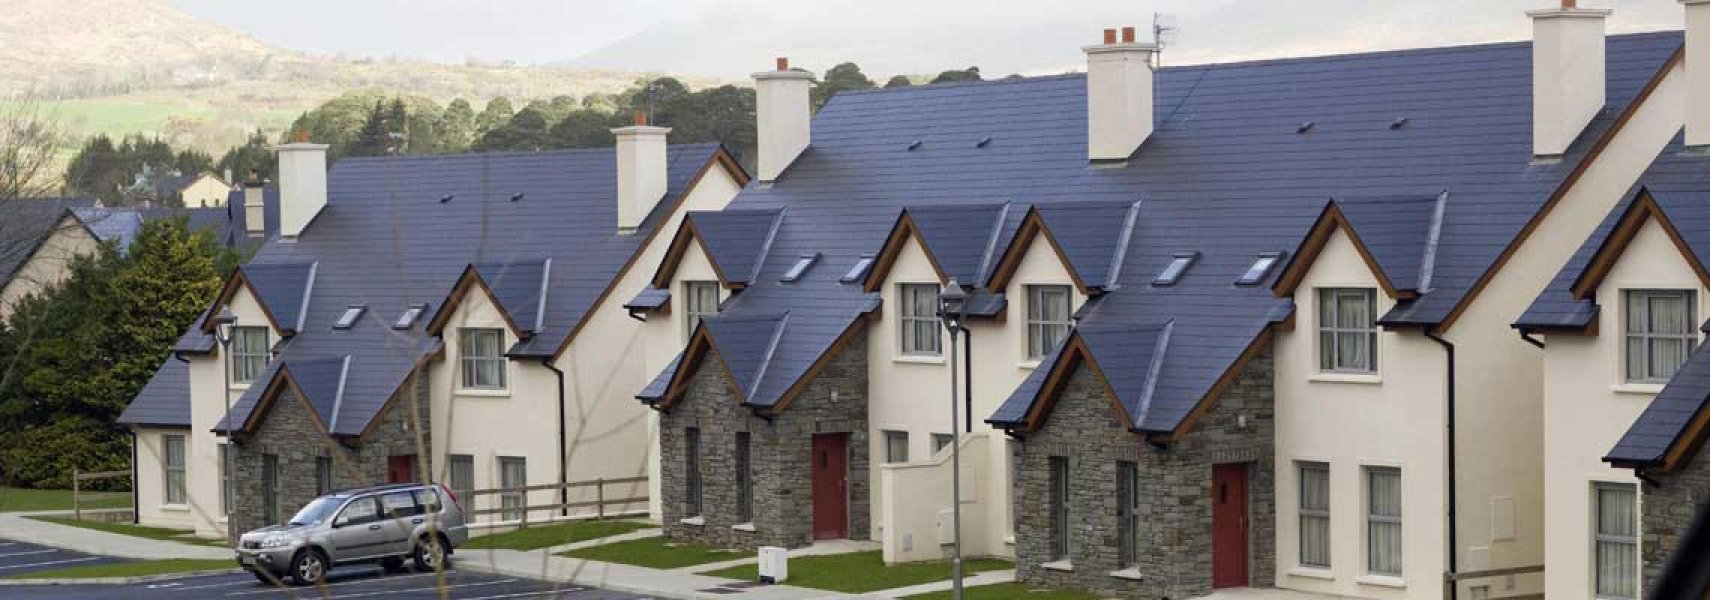 Kenmare bay hotel holiday homes kenmare county kerry - Kenmare hotels with swimming pools ...